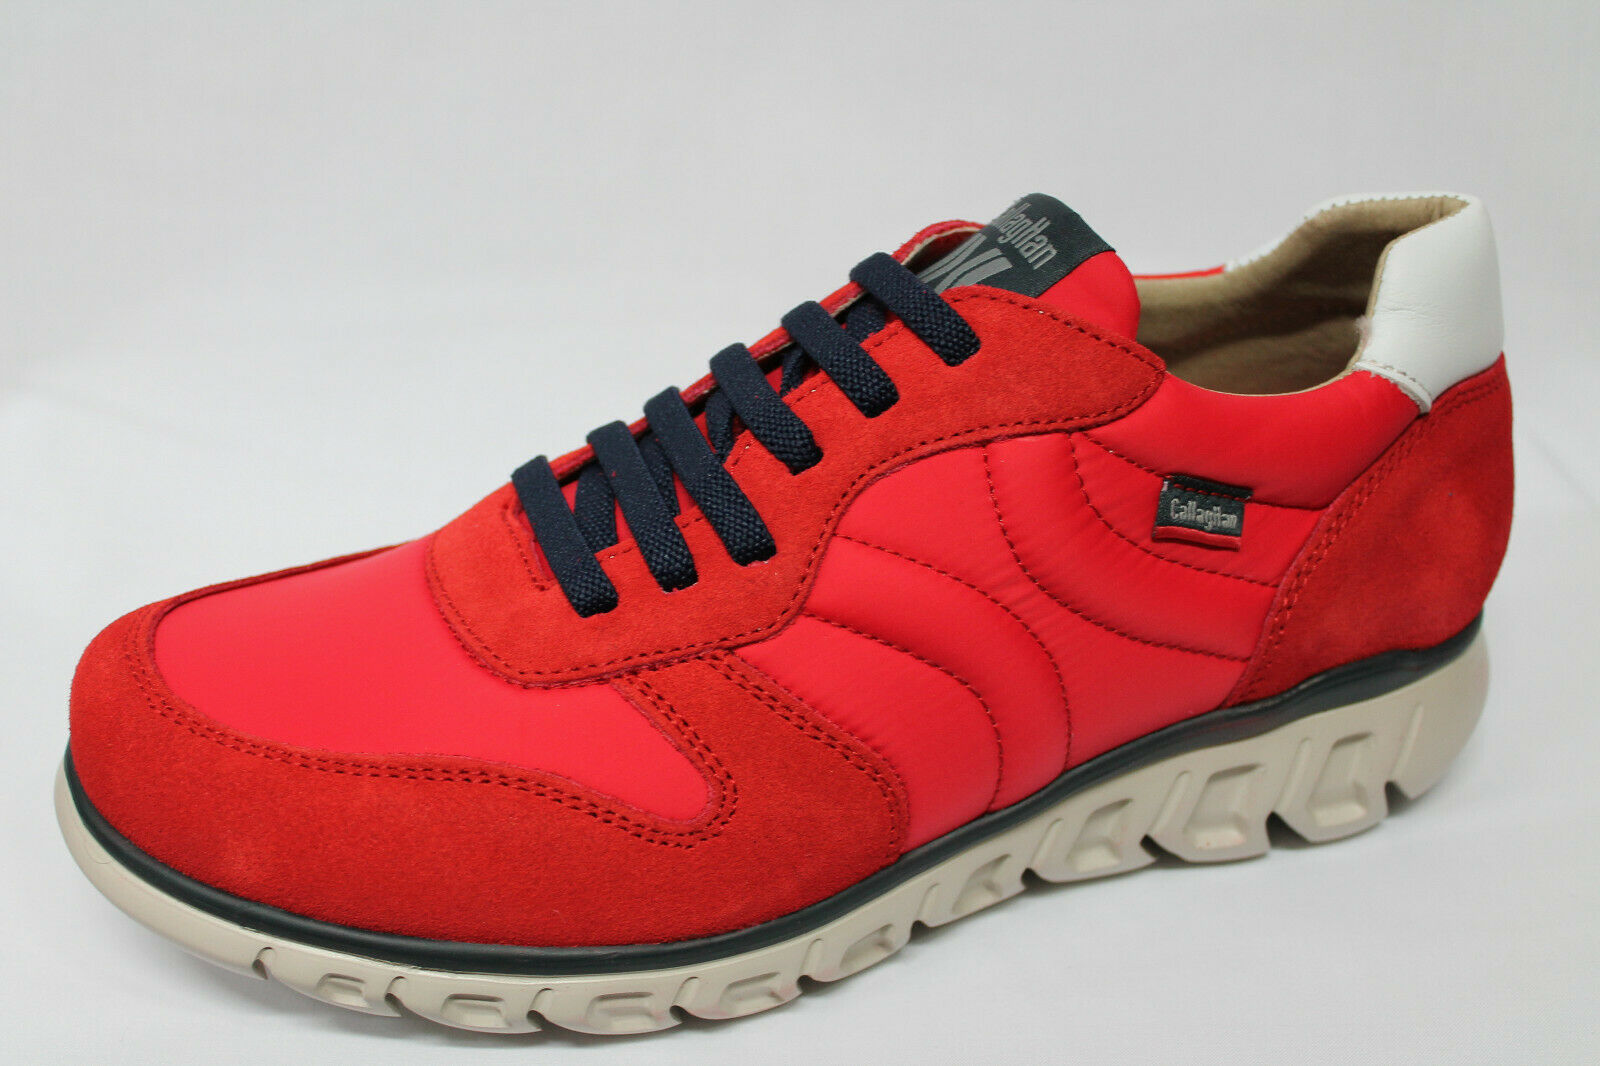 shoes Sneakers Callaghan 12903 camoscio e tessuto red